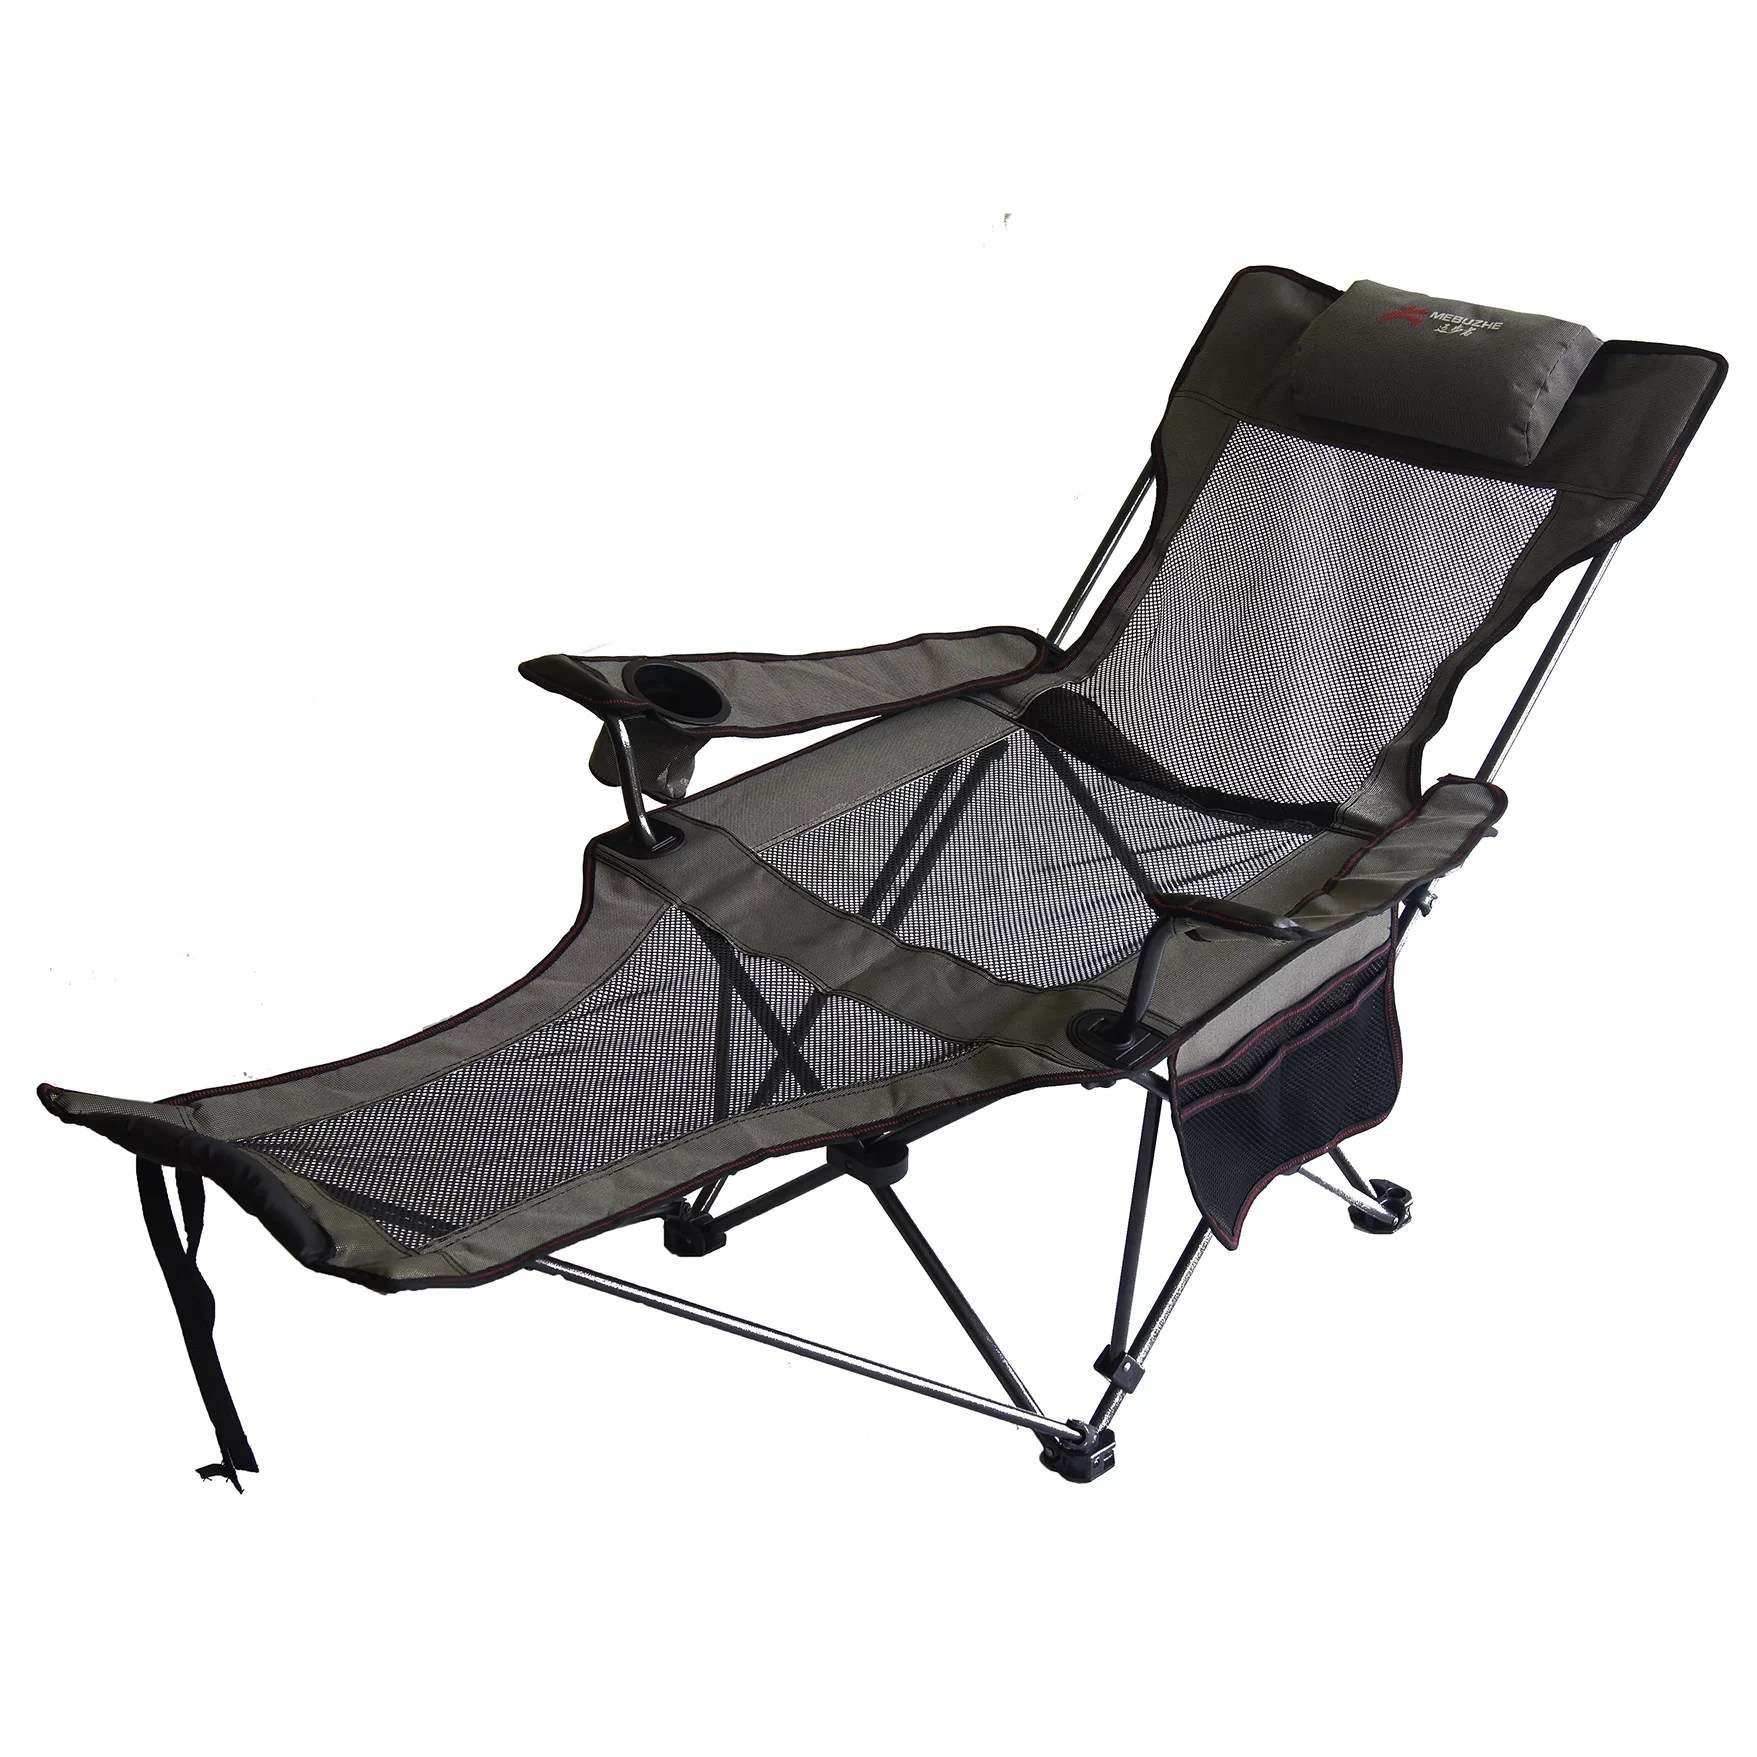 Portable Recliner Chair Ore Furniture Portable Mesh Lounger Reclining Chair